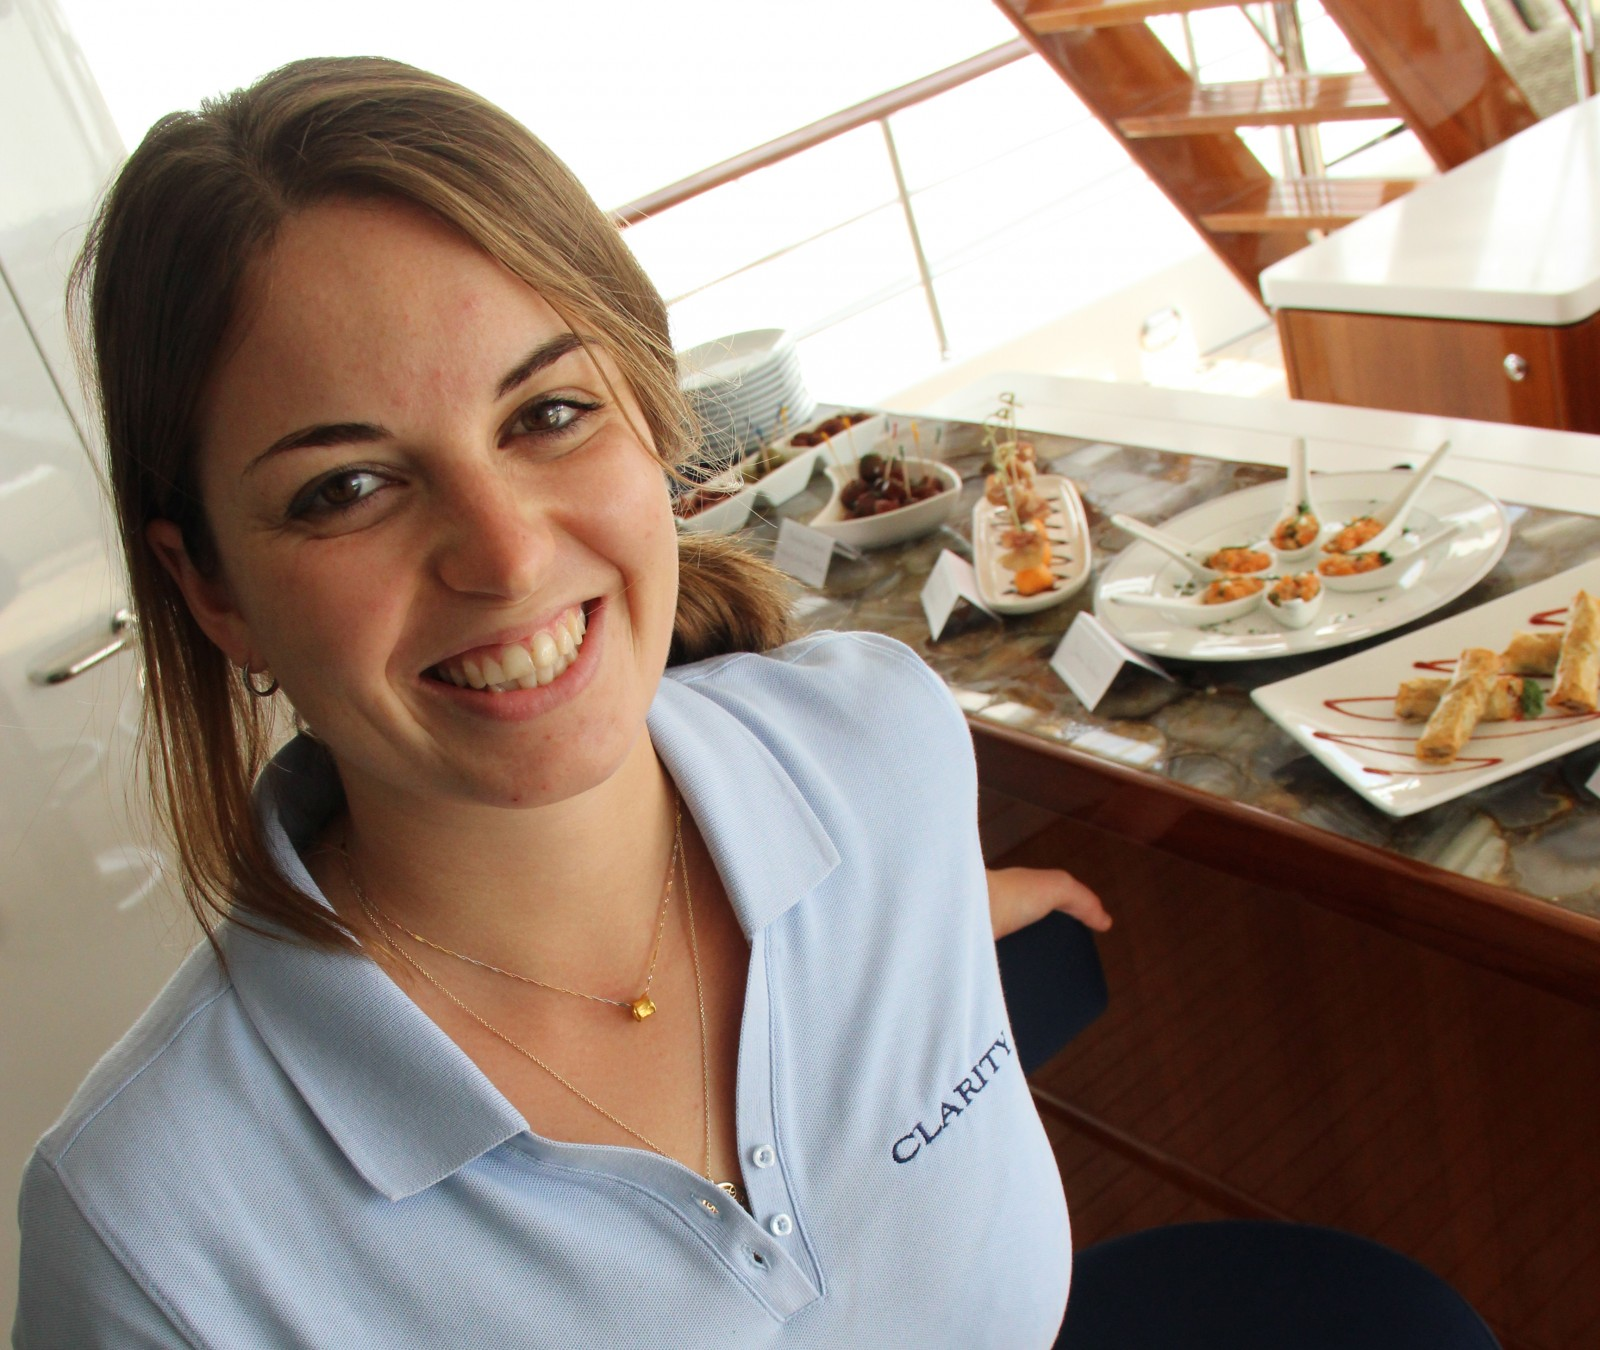 M/Y Clarity Chef Veronique Addy has studied raw food preparation techniques in Bali and has a certificate in Juice Therapy. Her goal is to help crew and guest eat healthy. Photo by Suzette Cook